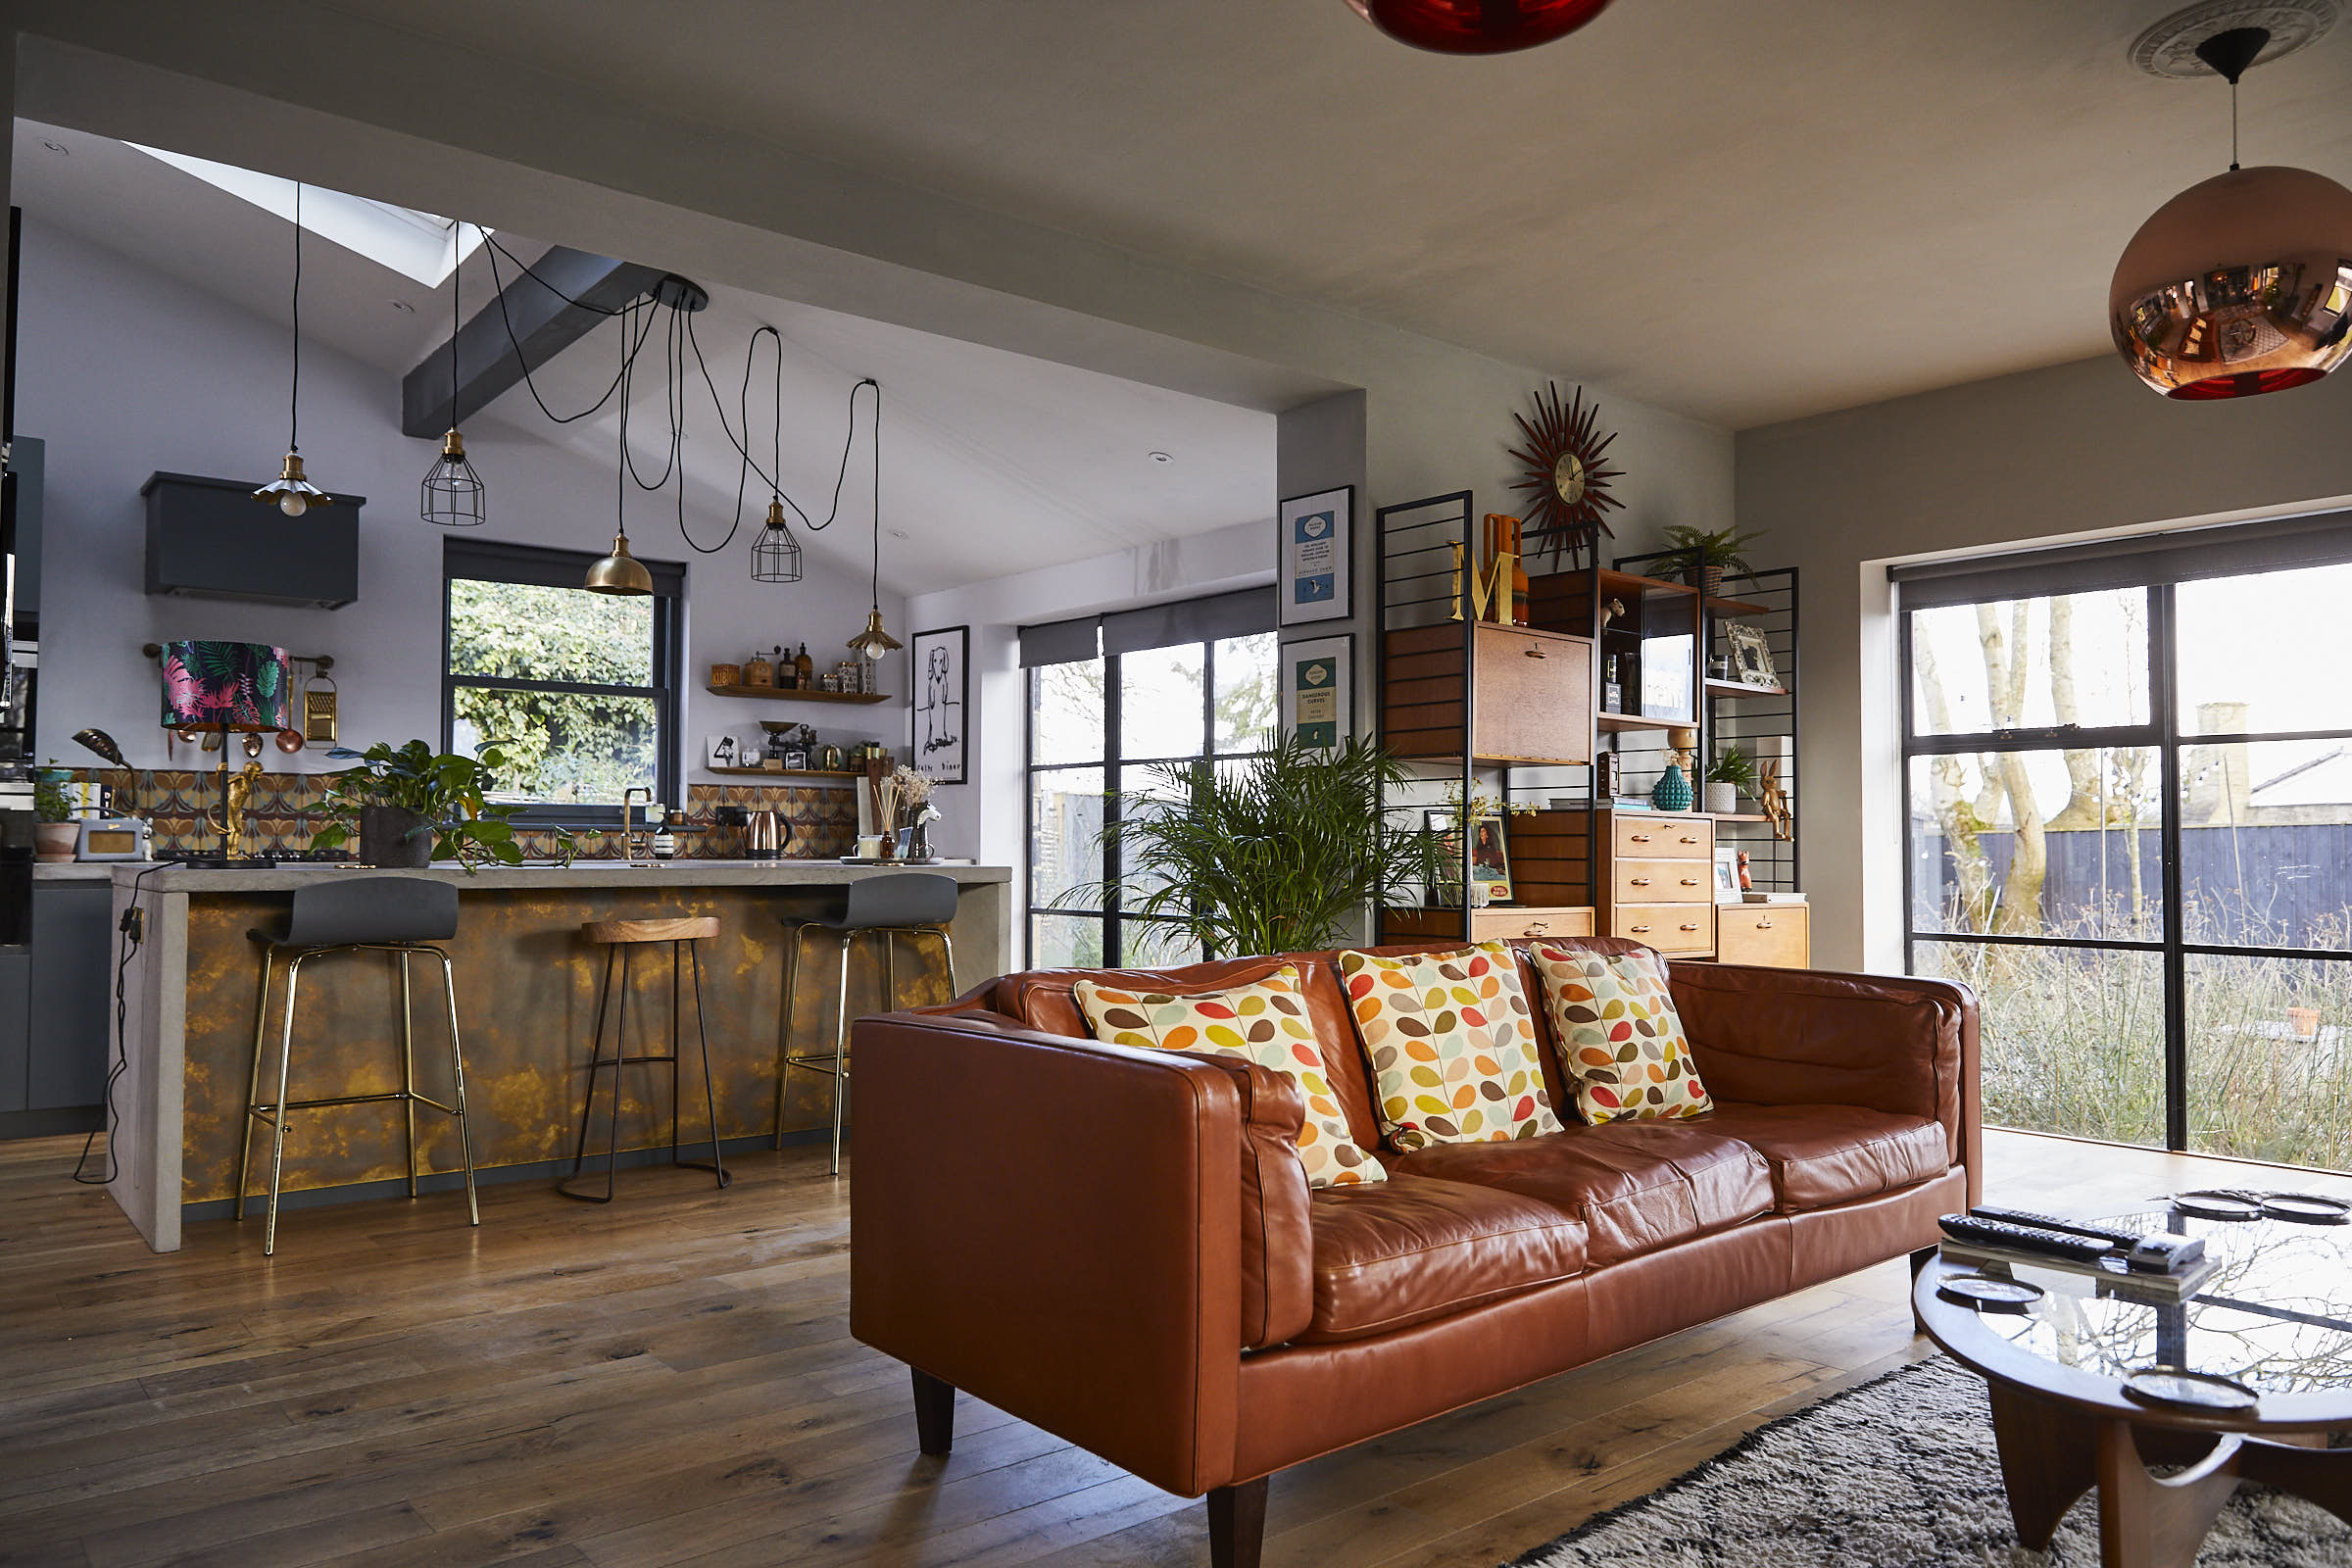 Brown leather sofa with yellow cushions in open plan kitchen and dining room